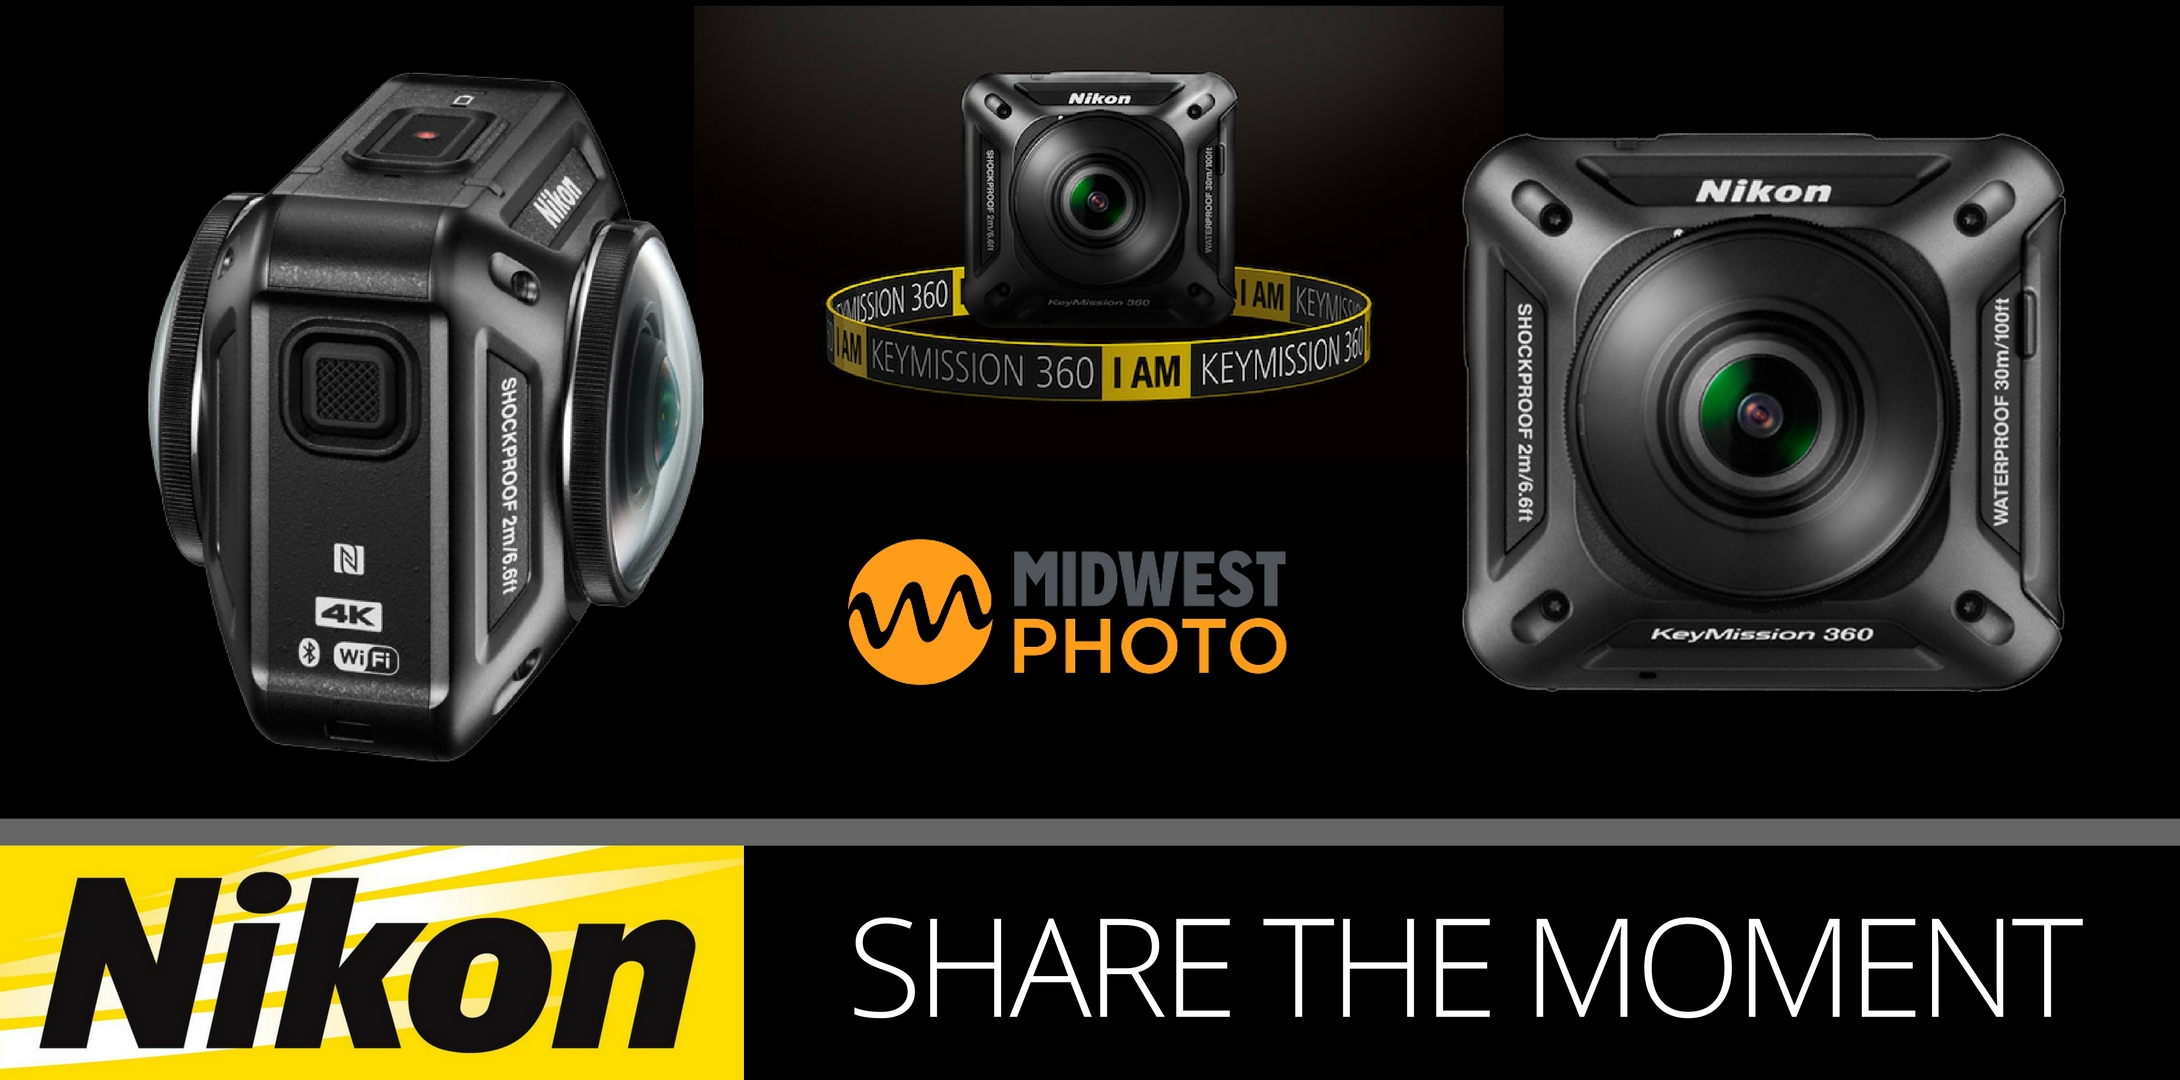 Nikon Share the Moment Event Midwest Photo